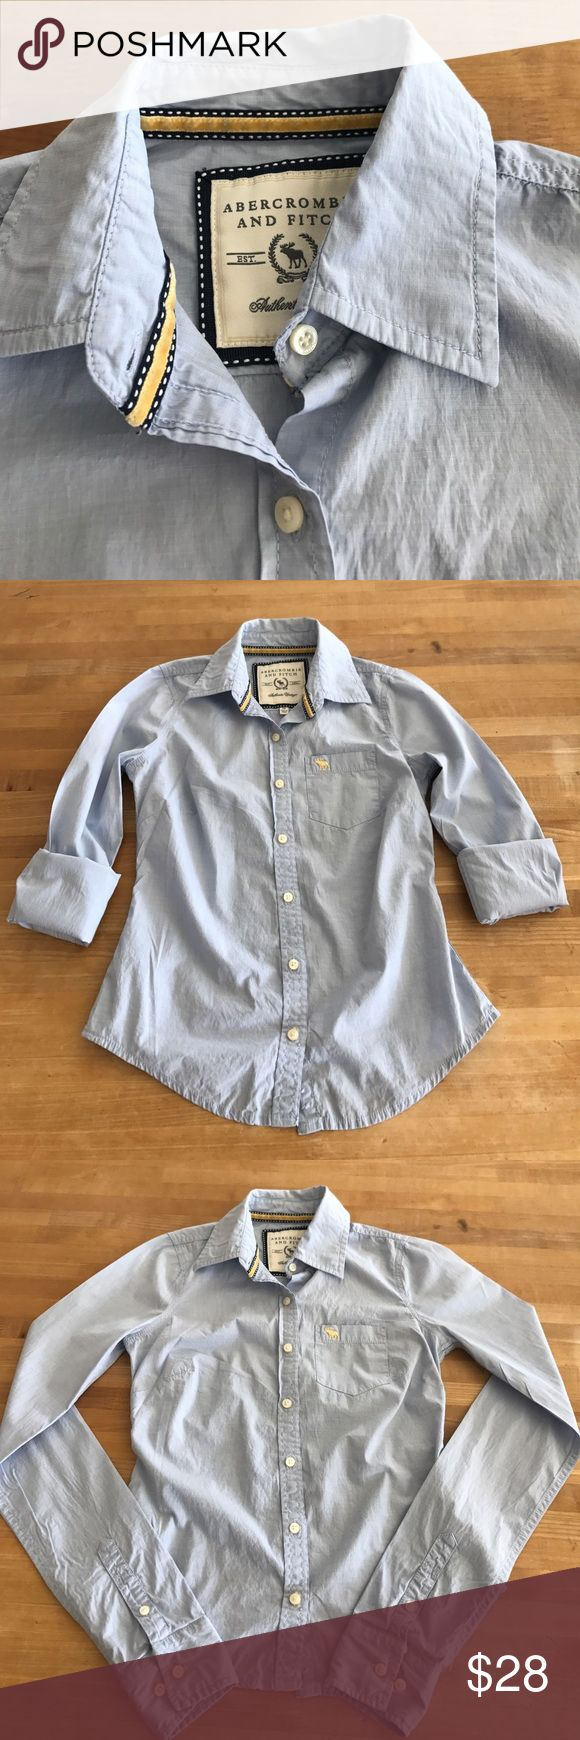 Abercrombie and Fitch Oxford Abercrombie and Fitch Oxford - XS - Blue - Looks new Abercrombie & Fitch Tops Blouses